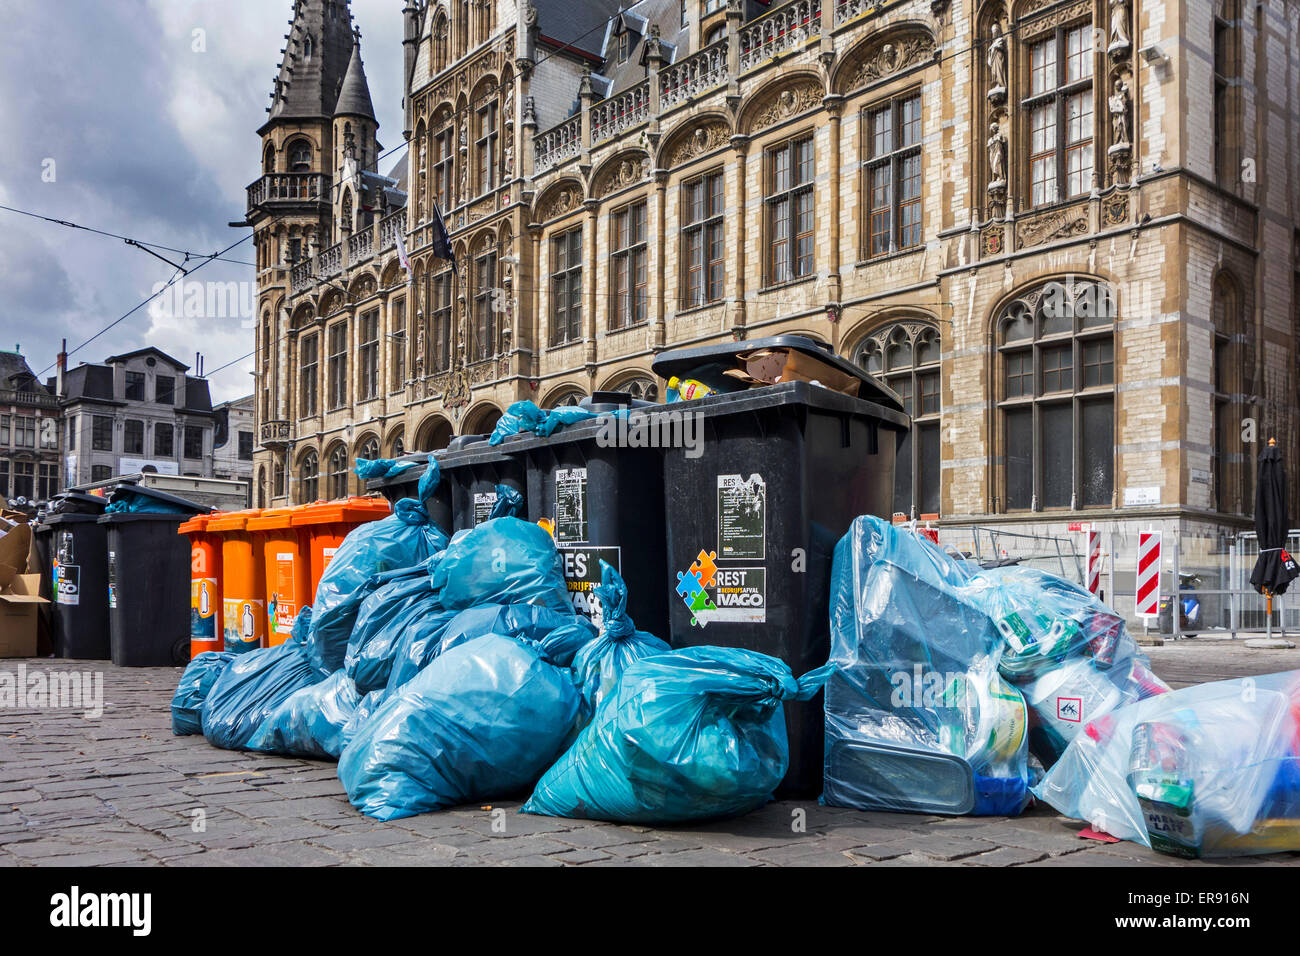 Rubbish bags and garbage containers with piled up household refuse due to strike by waste processing firm IVAGO, - Stock Image